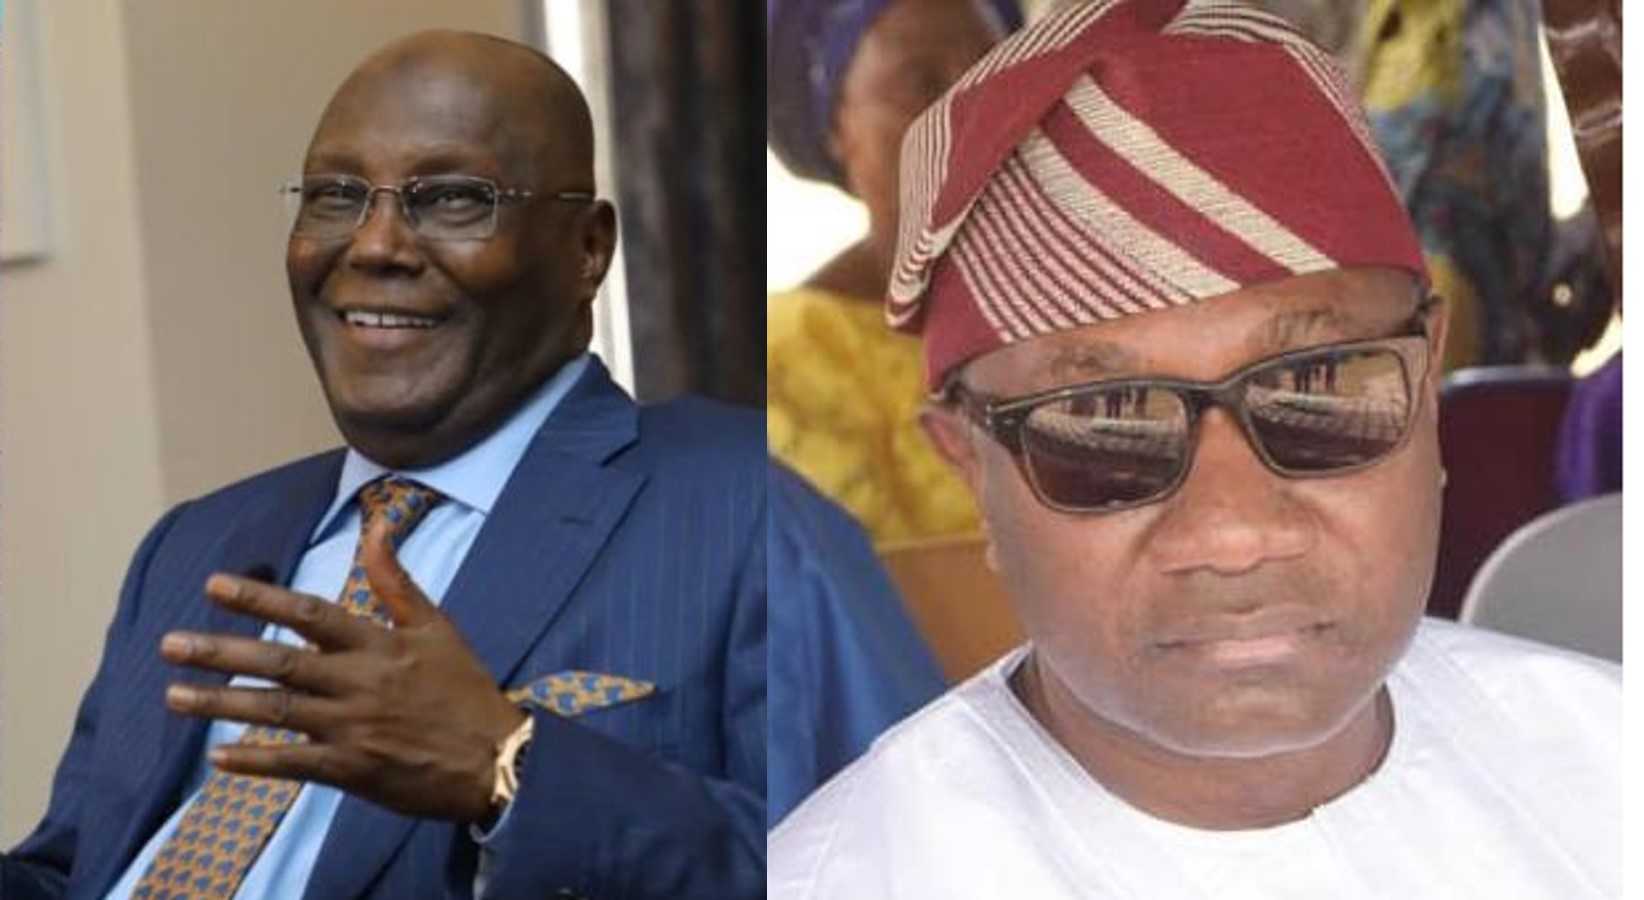 #10YearChallenge: Presidential aspirant, Atiku Abubakar and billionaire Femi Otedola join challenge (Photos)